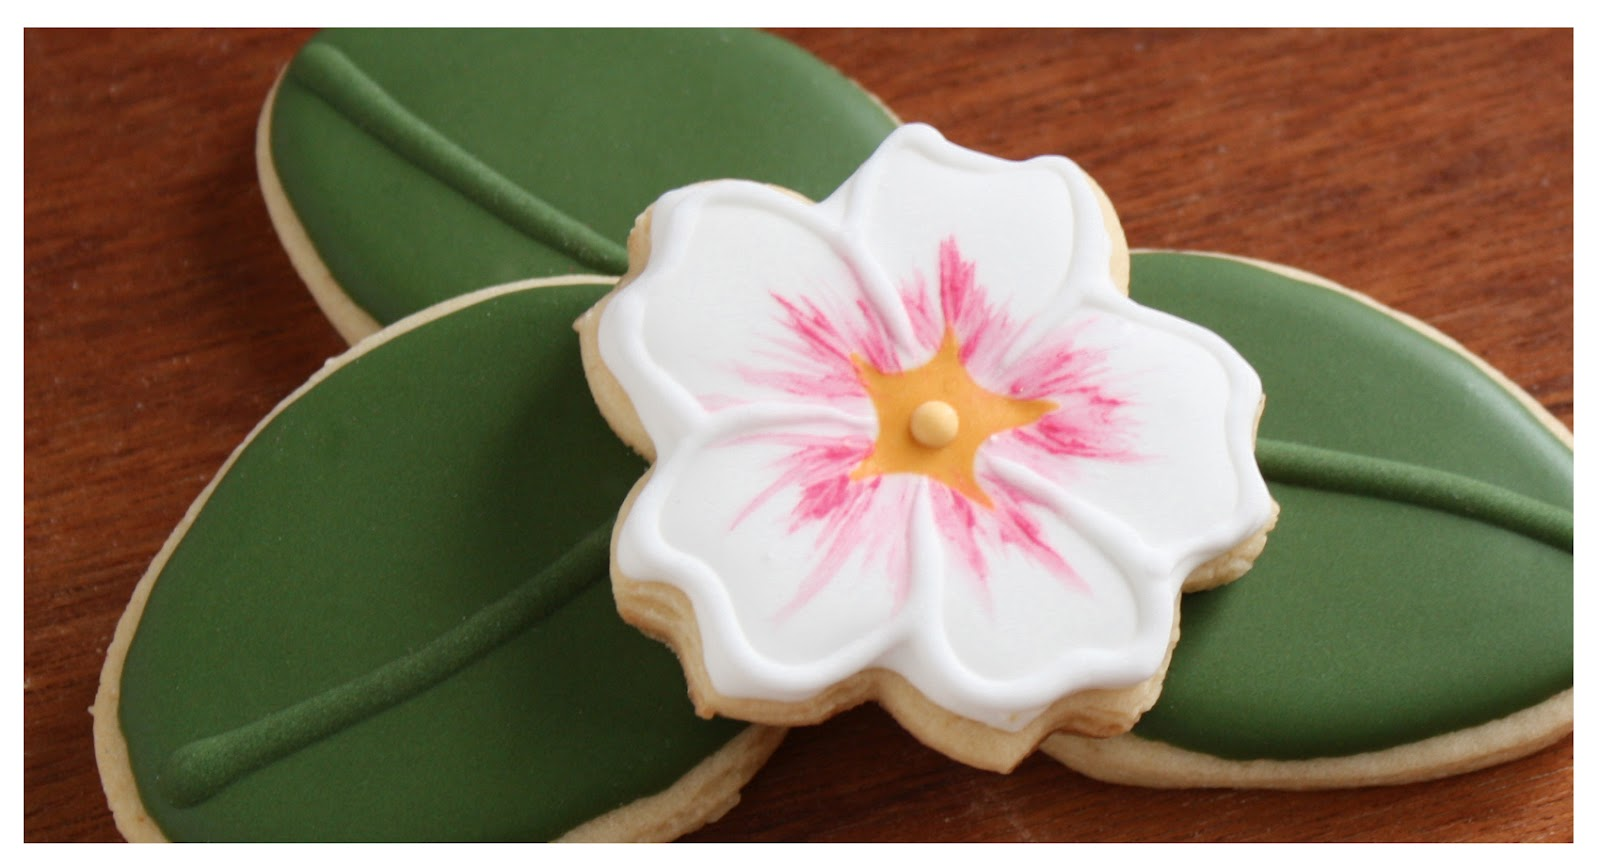 iced sugar cookies made to look like white and pink primrose flowers by Klickitat Street